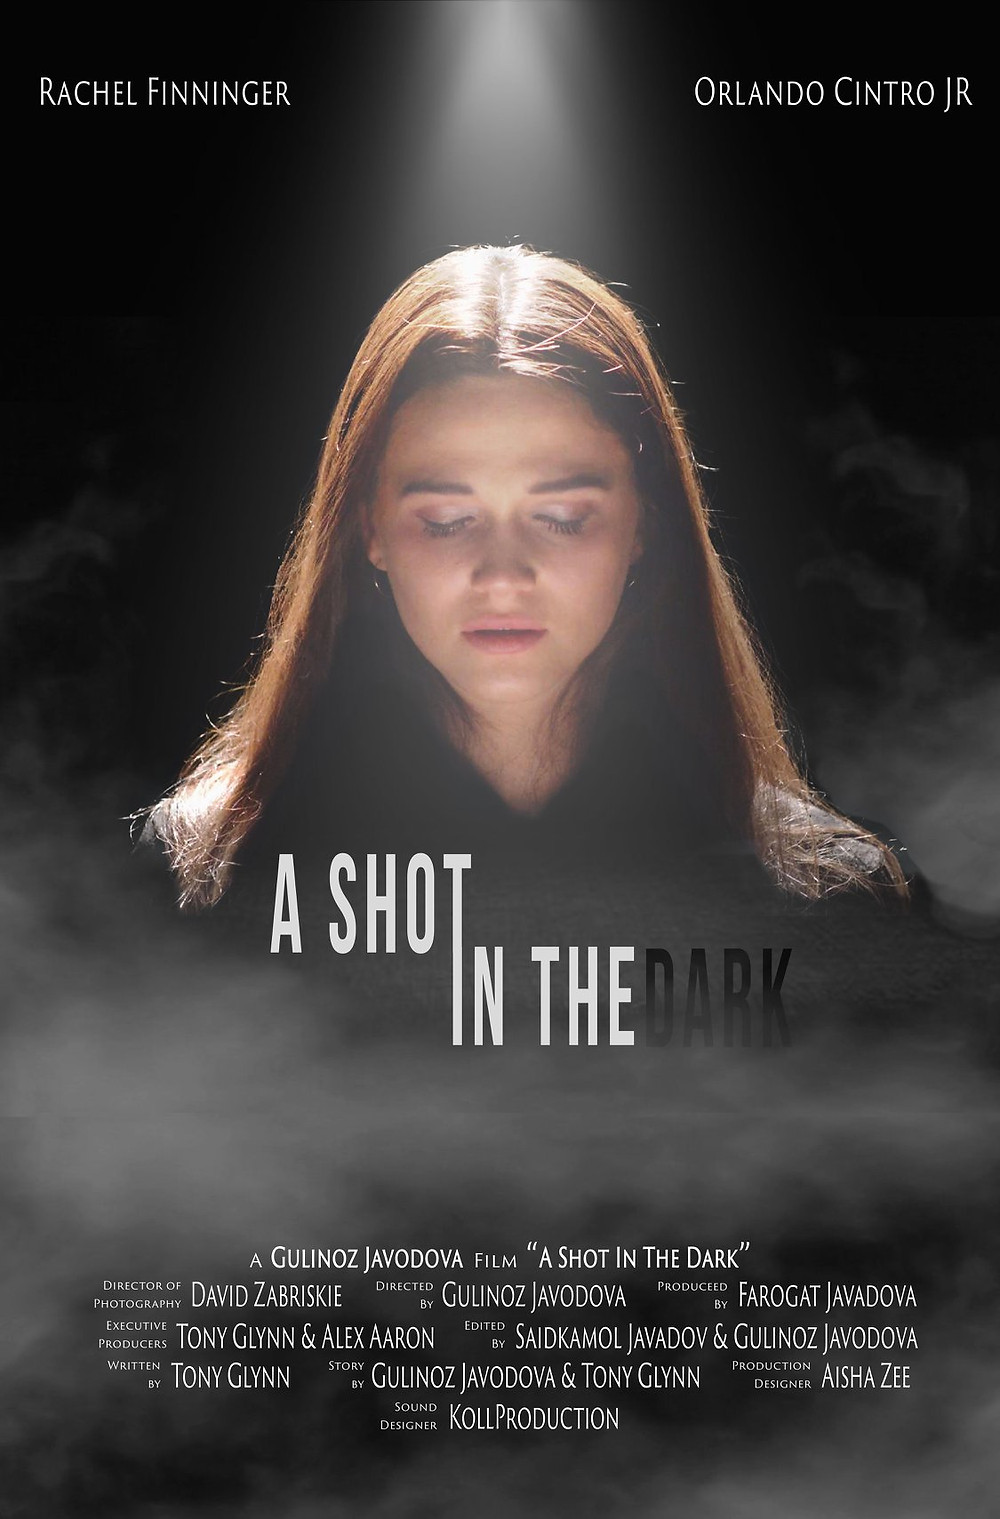 A Shot In The Dark short film poster